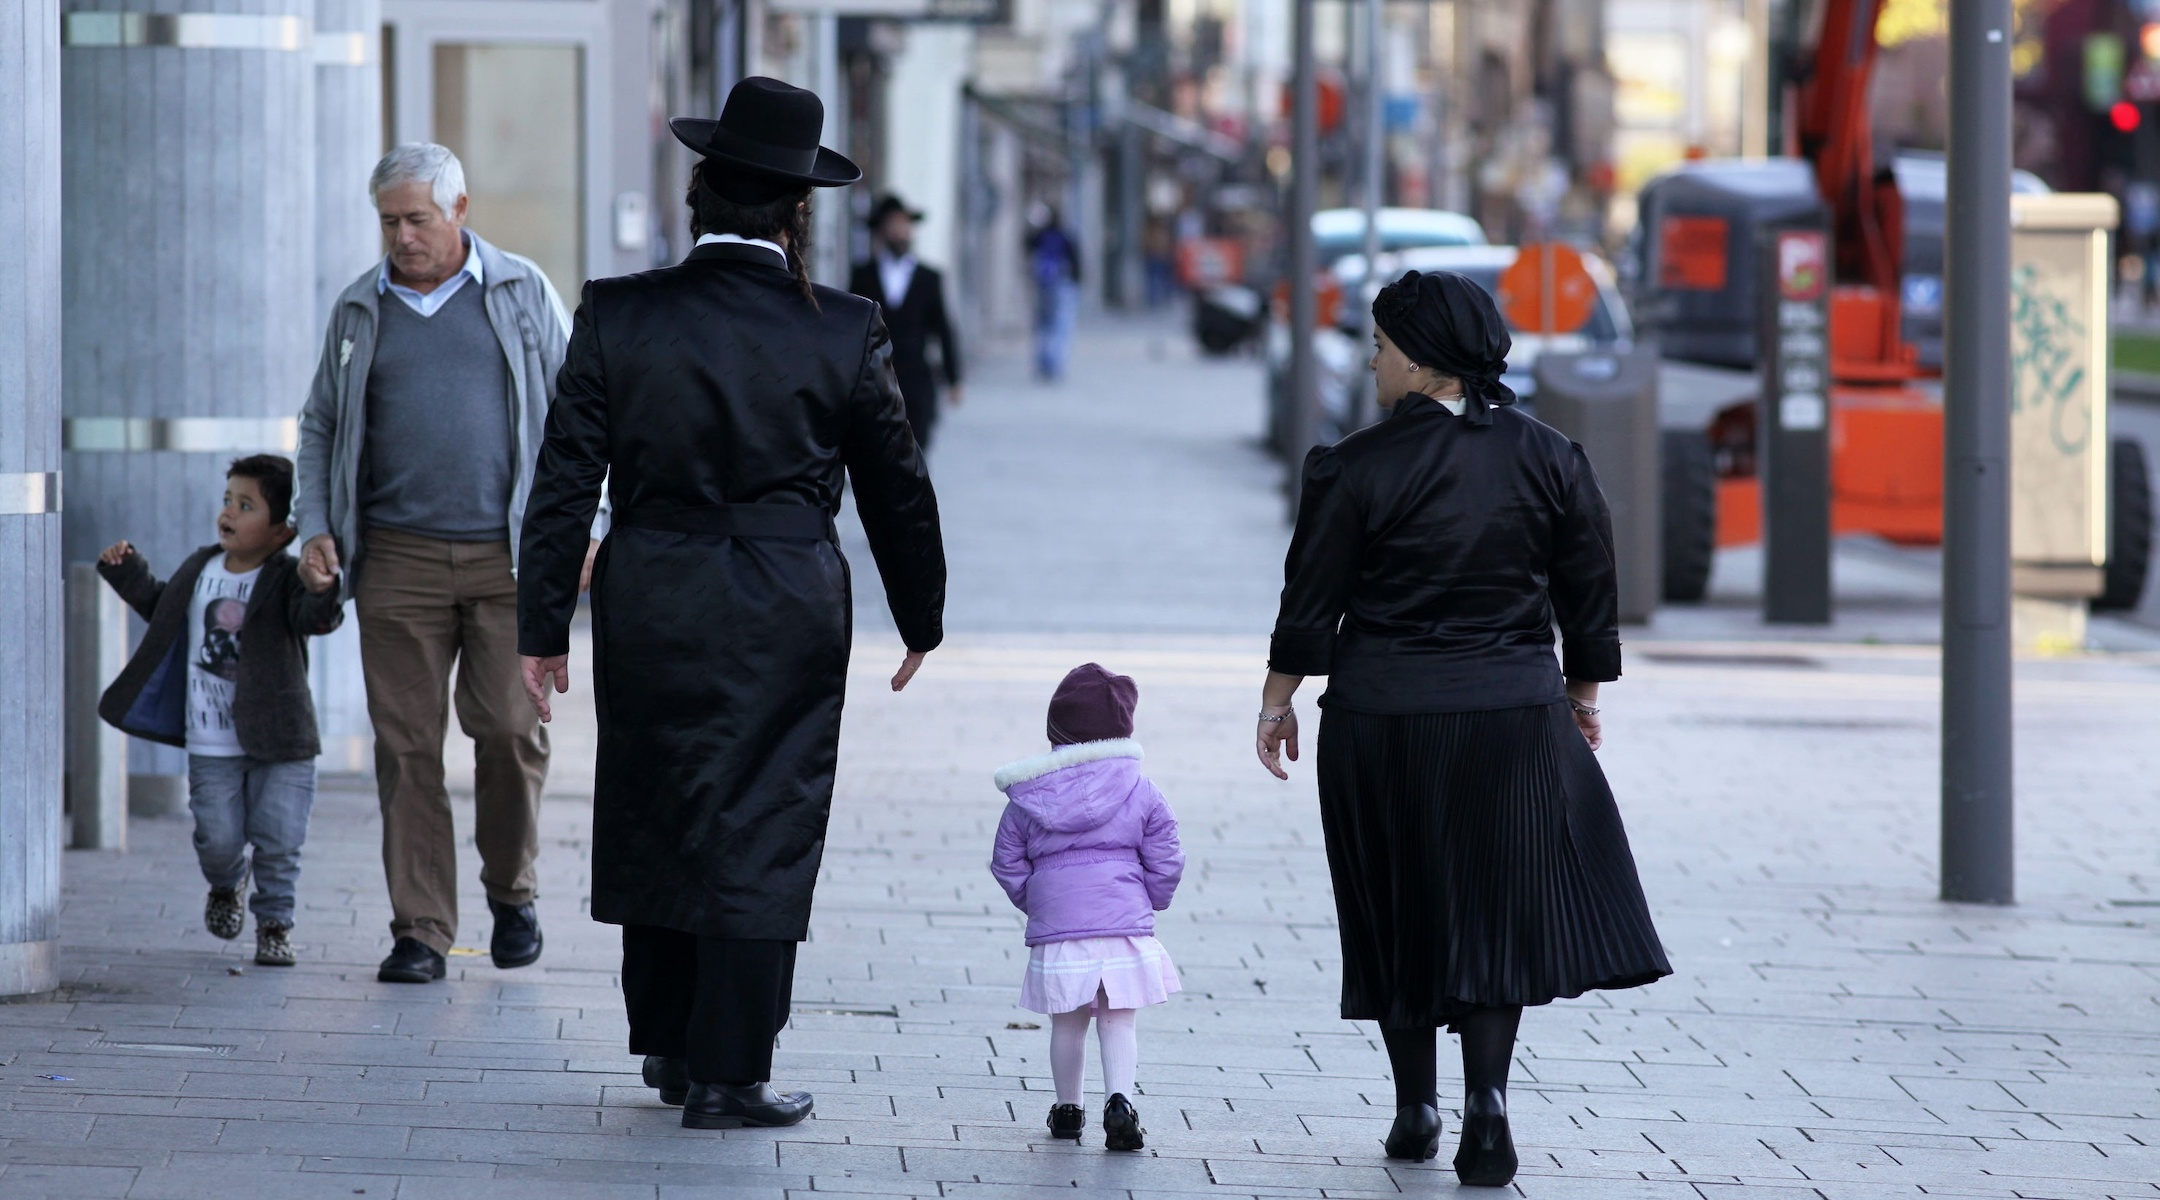 City of Antwerp invites residents of heavily Jewish neighborhoods for COVID-19 testing